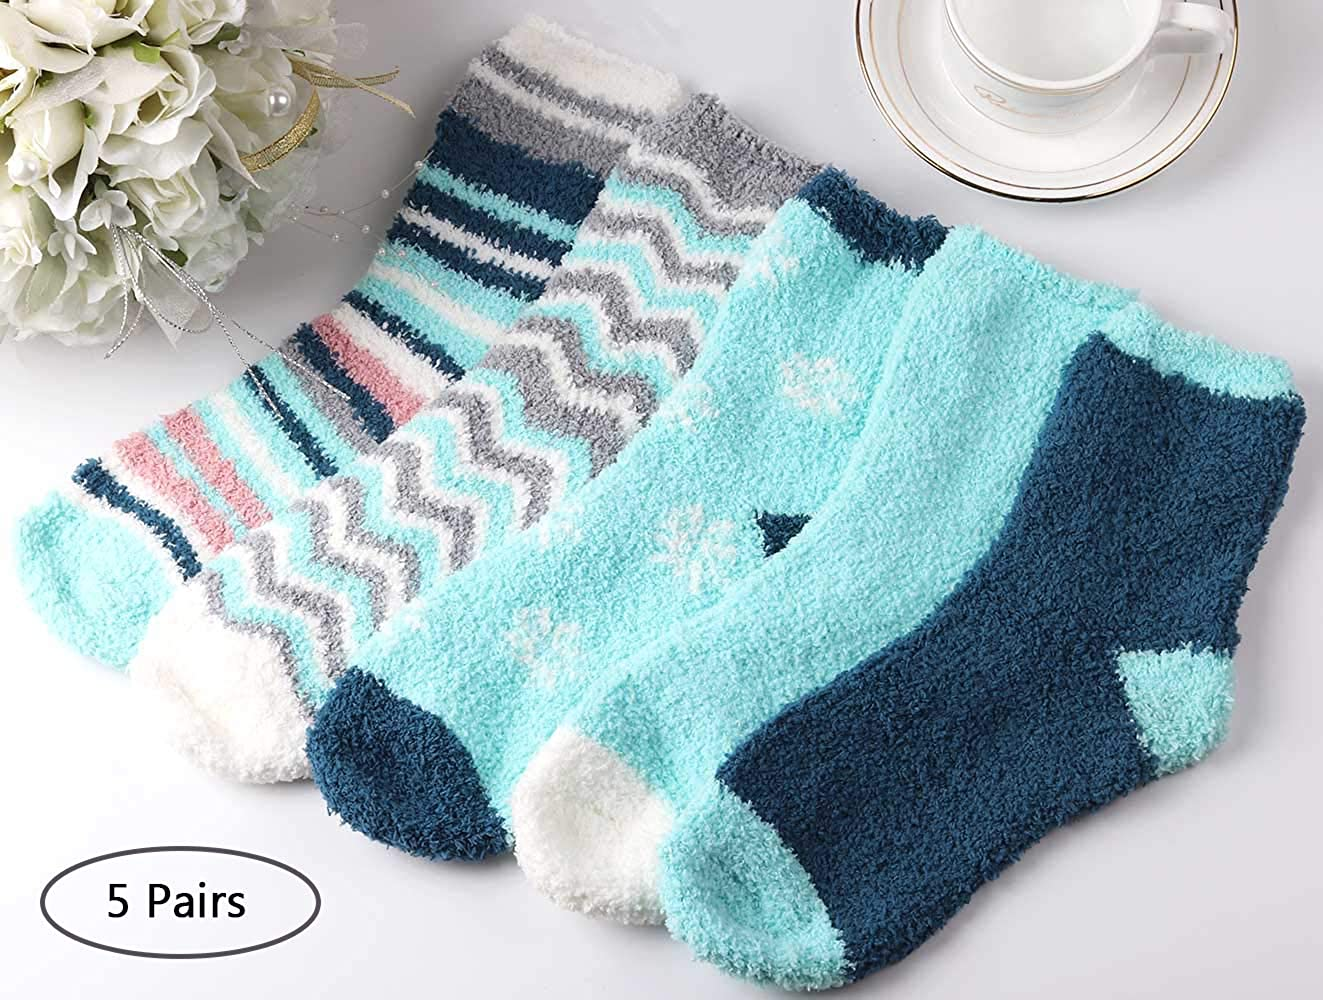 5 Pairs Soft Warm Fuzzy Cozy Home Bed Blue Socks for Winter Fluffy Socks for Women and Girls